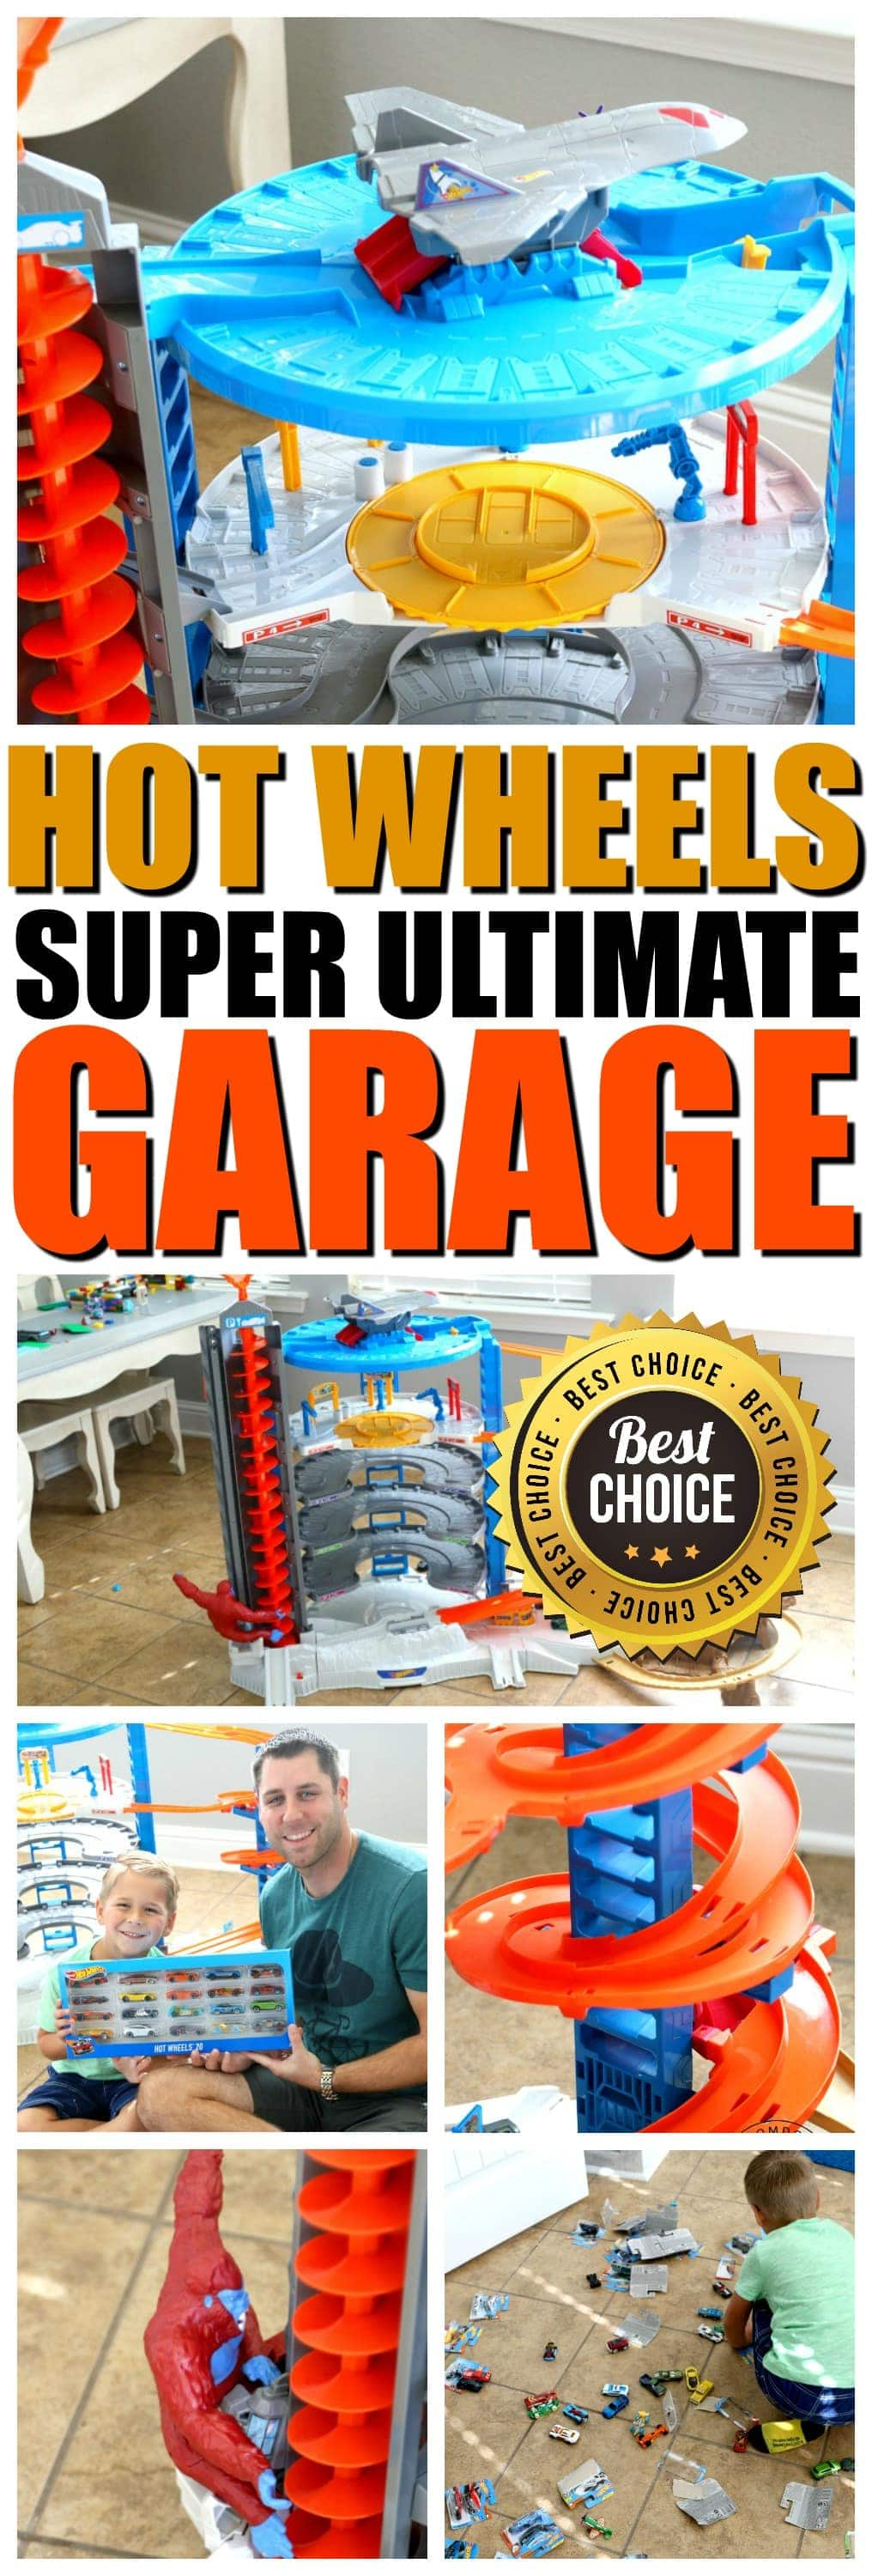 Hot Wheels Super Ultimate Garage Review 2017 | Top toy for Kids and Parents play time | Hot Wheels Car Packs  | Video